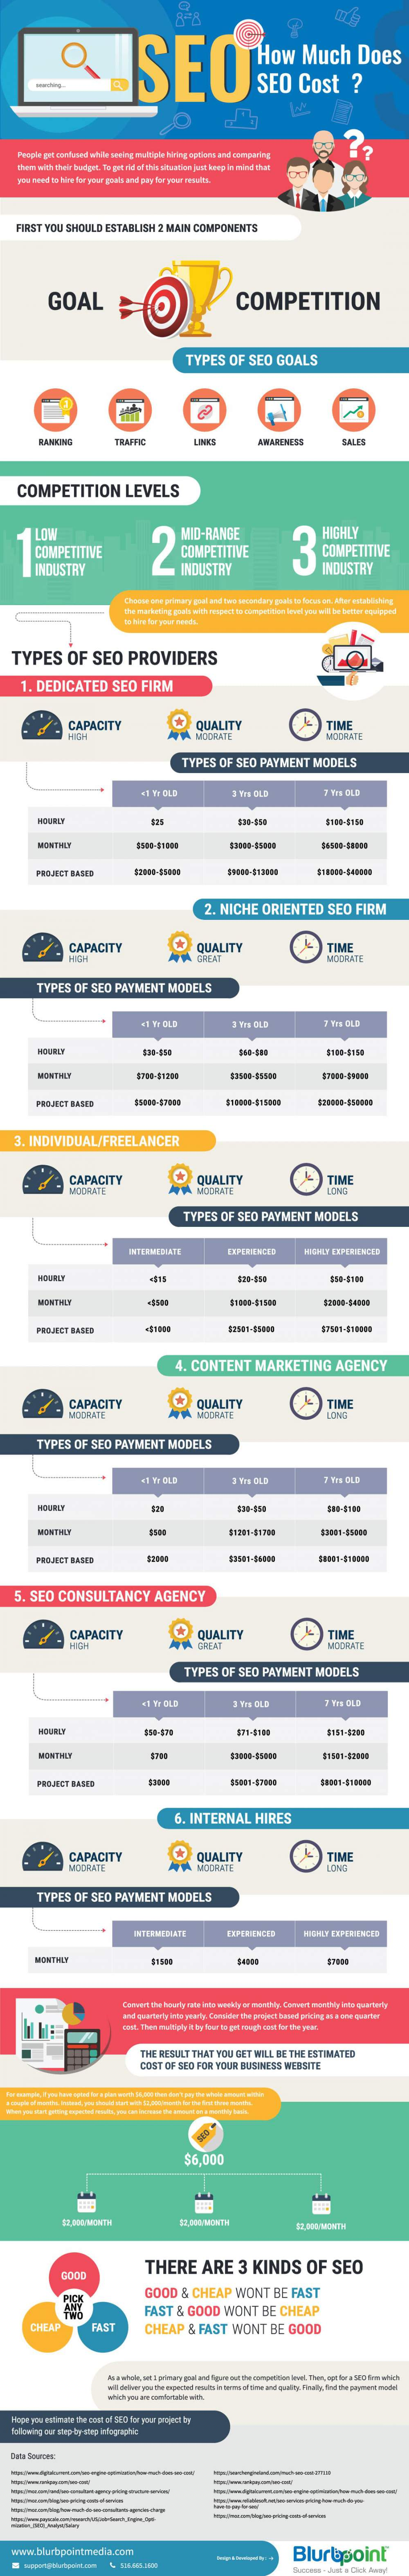 How Much Does SEO Cost